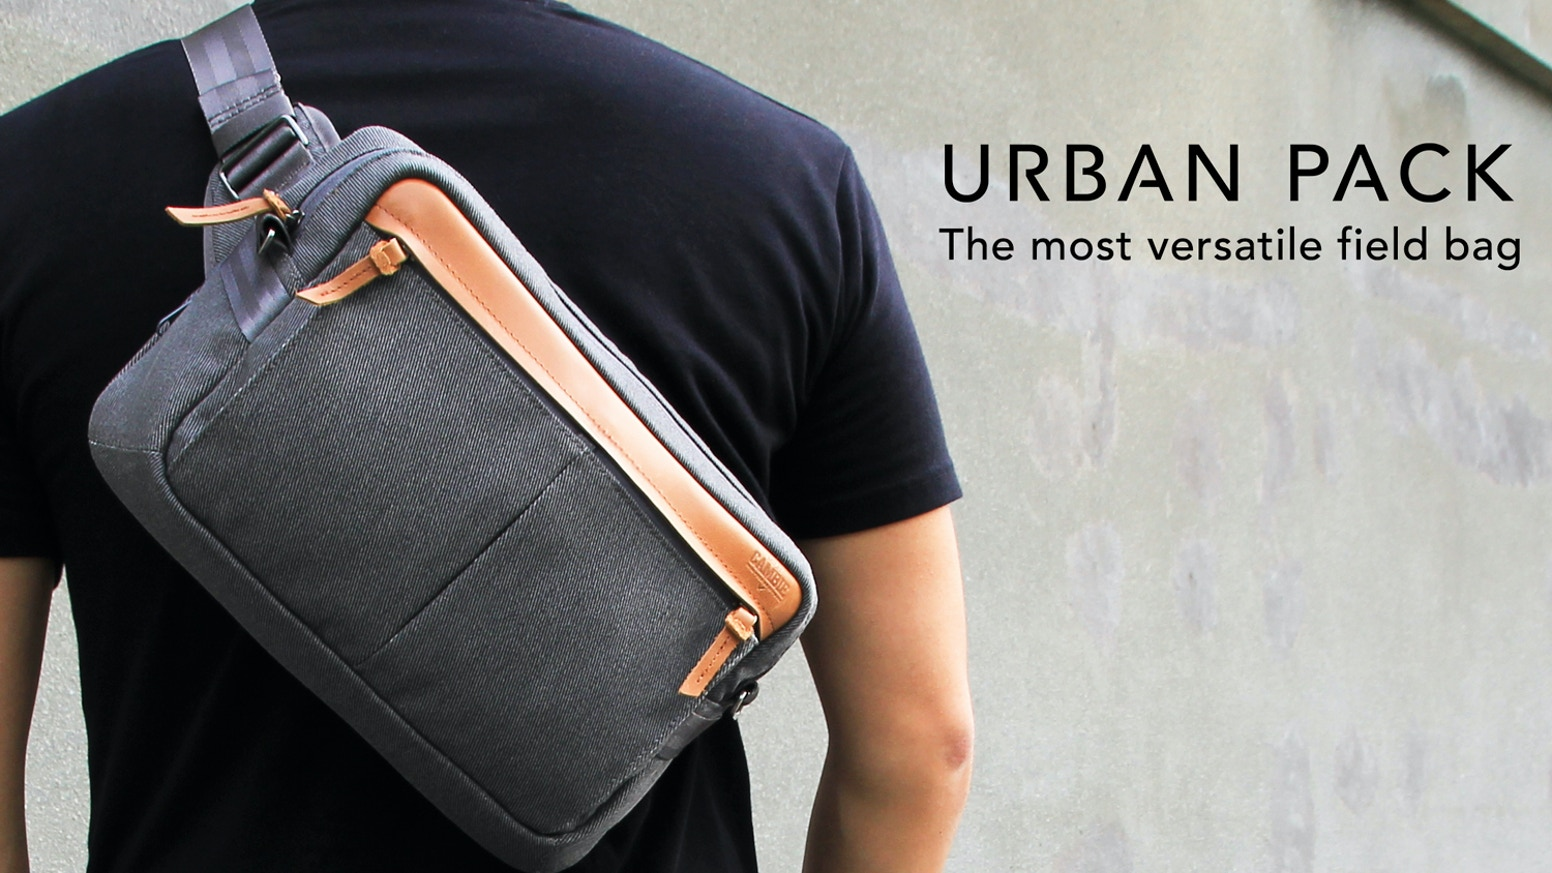 Inspired by the dynamic city lifestyle.  It converts to a sling pack, crossbody pack, shoulder pack & hip pack. Perfect for any day.